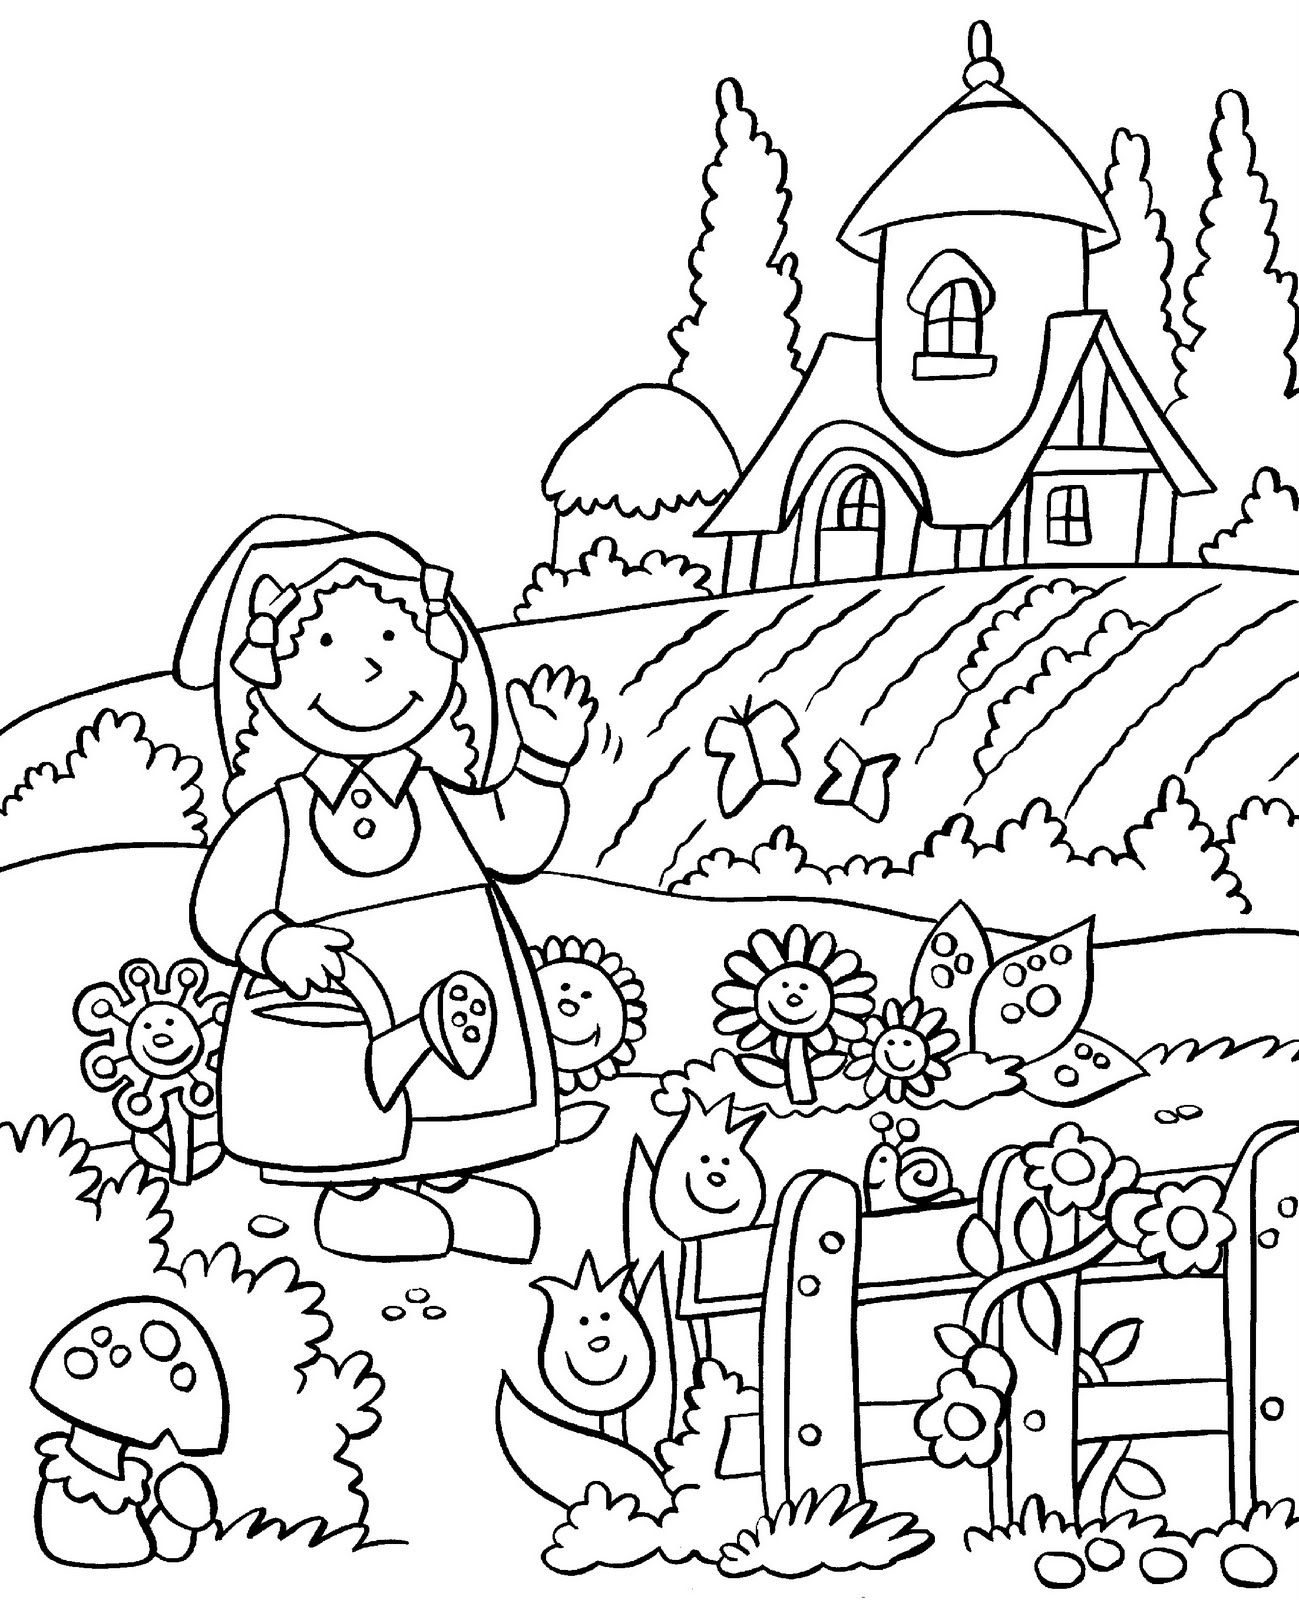 garden pictures to color gardening coloring pages to download and print for free color pictures to garden